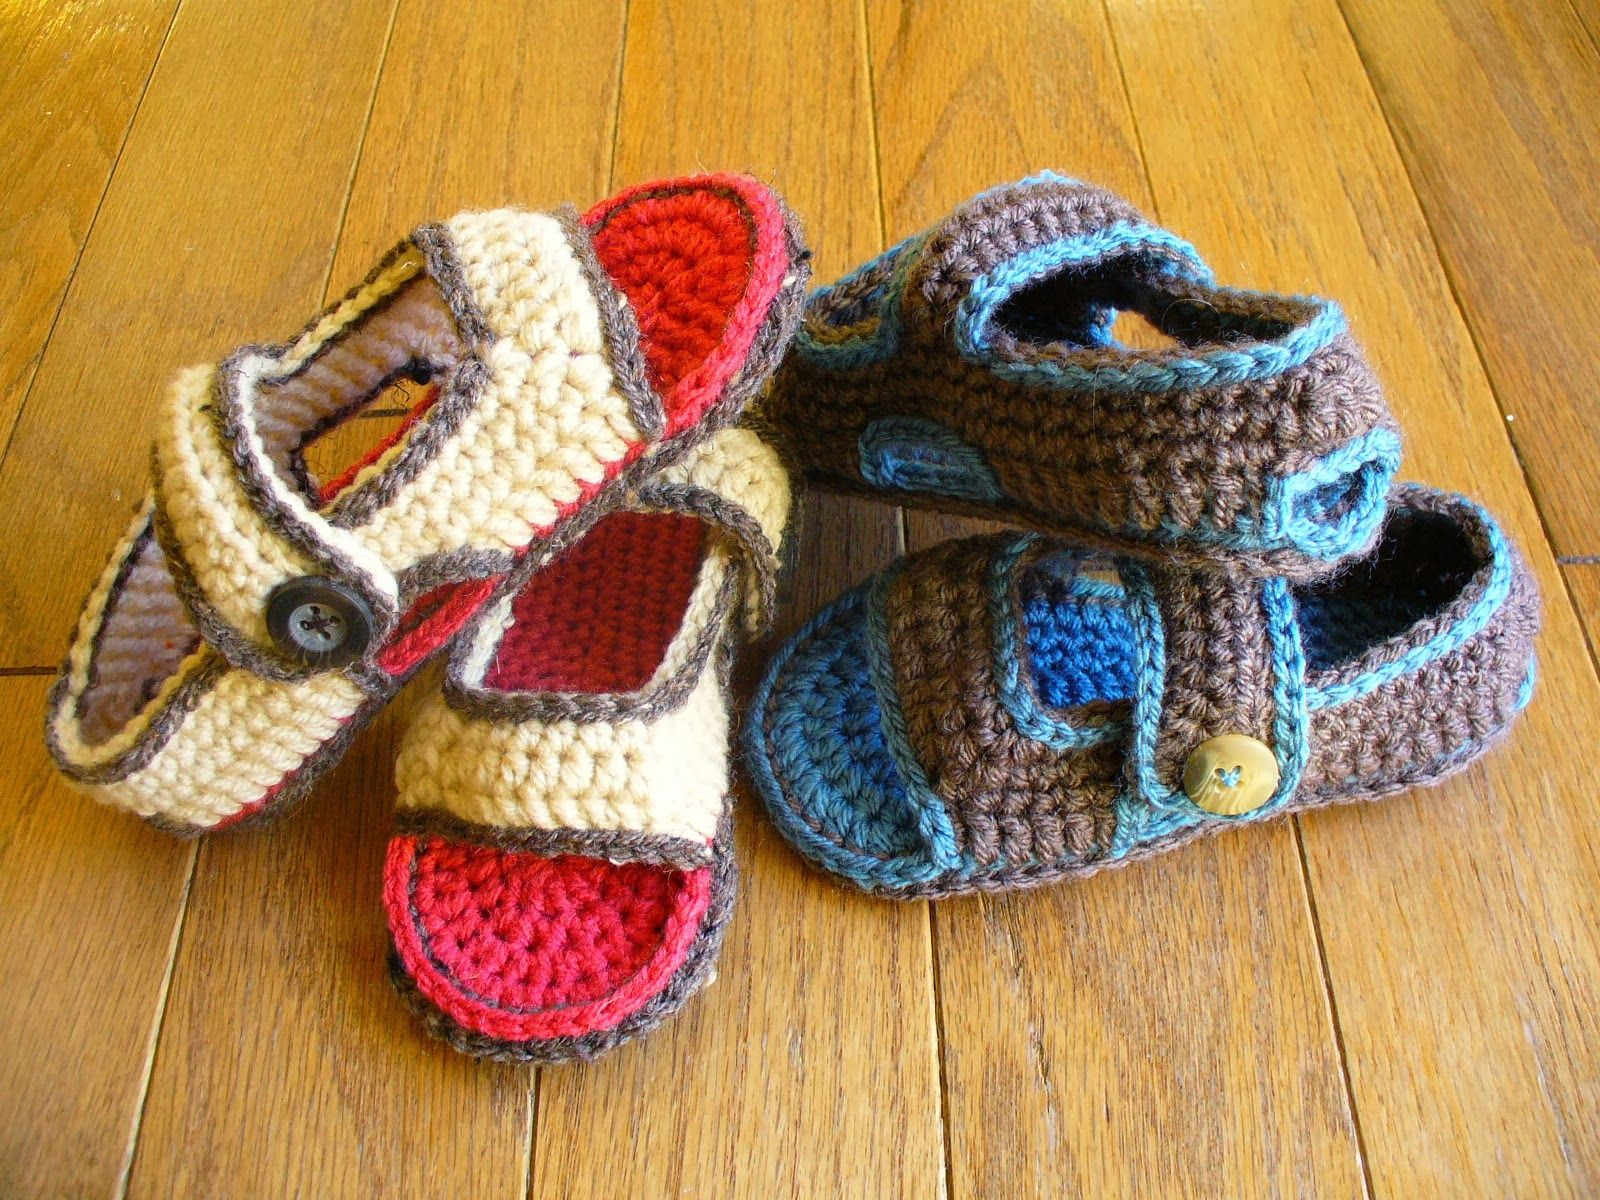 60+ Adorable and FREE Crochet Baby Sandals Patterns | Crochet baby ...